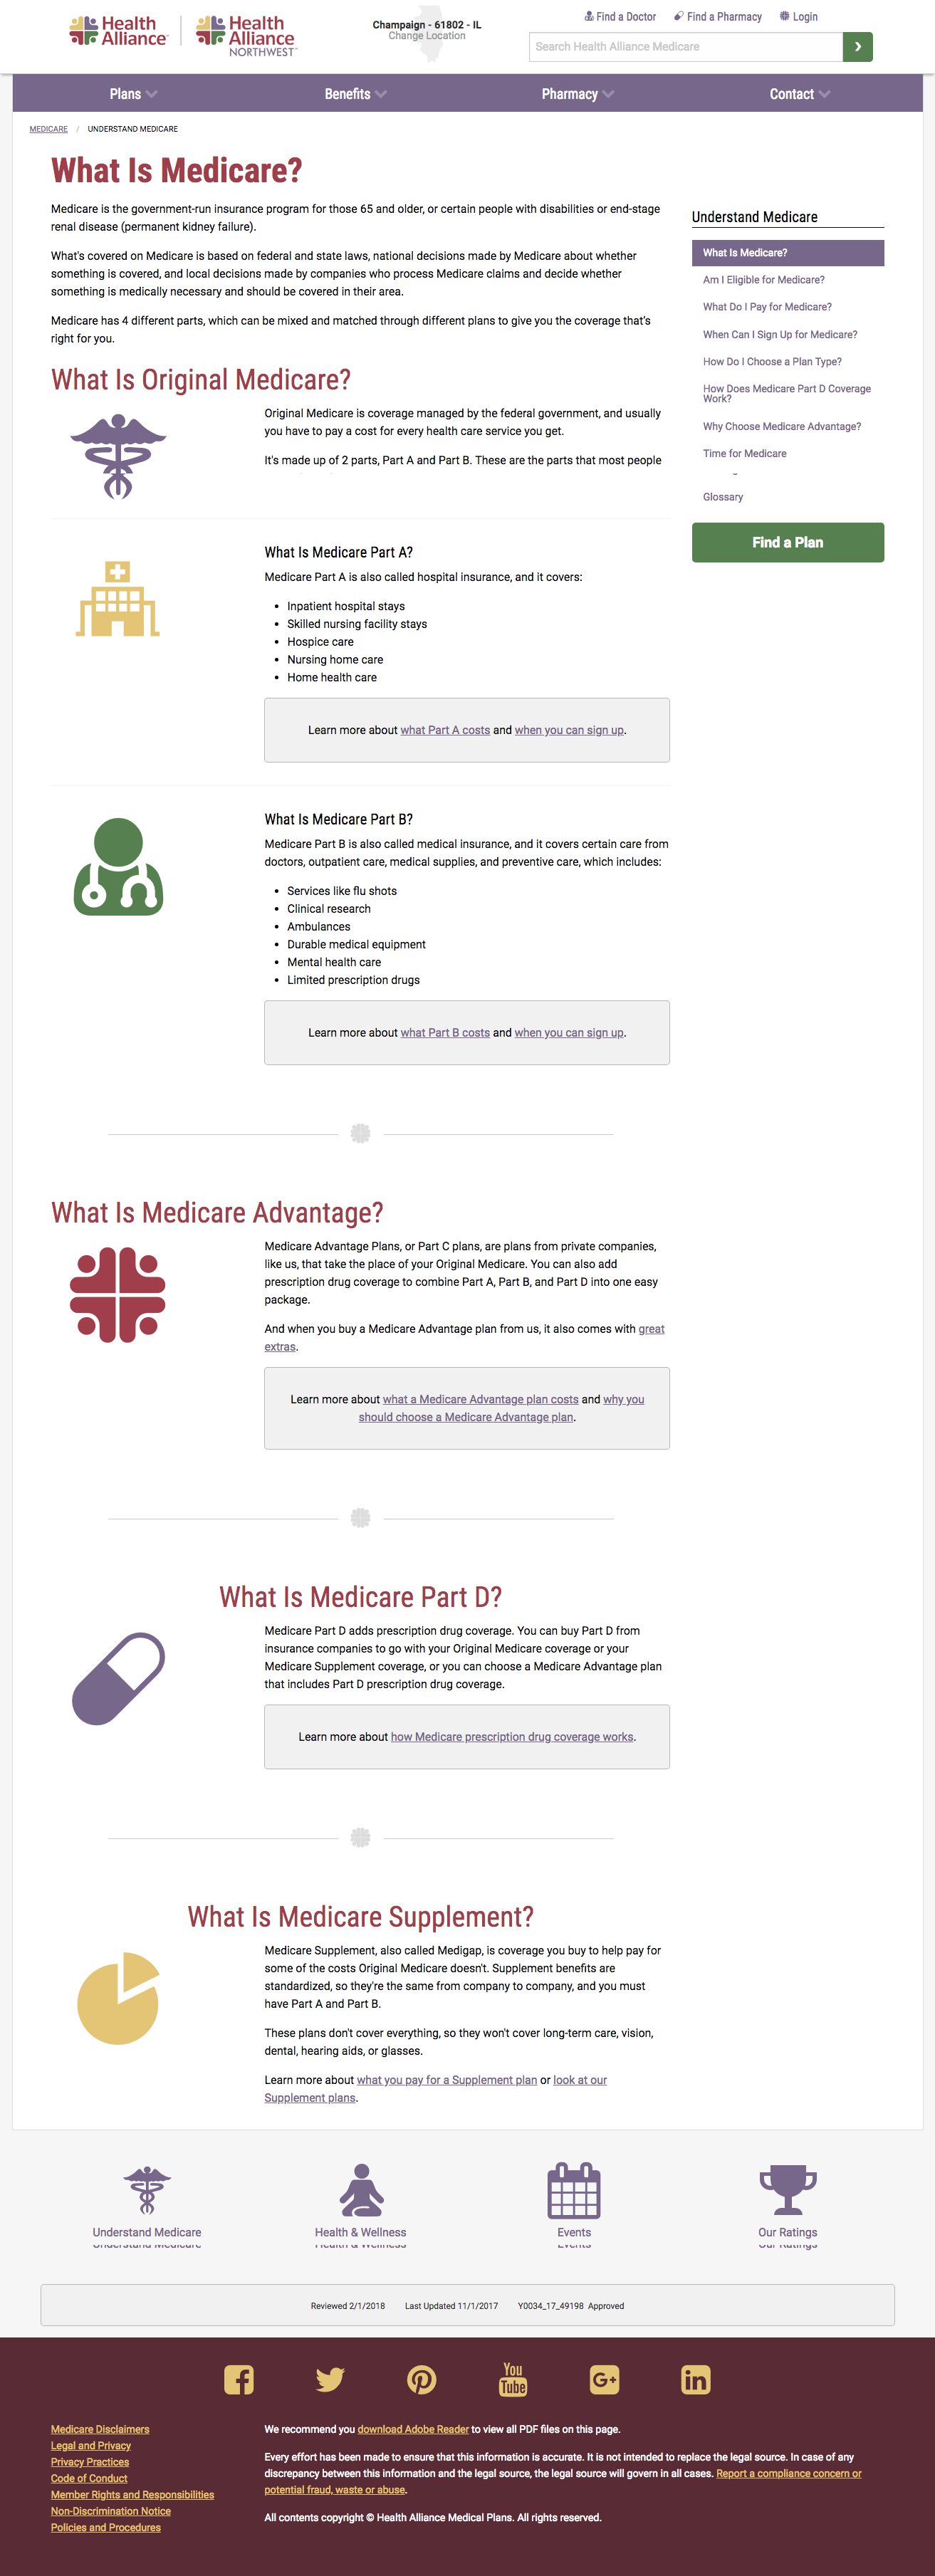 Understand Medicare section landing page